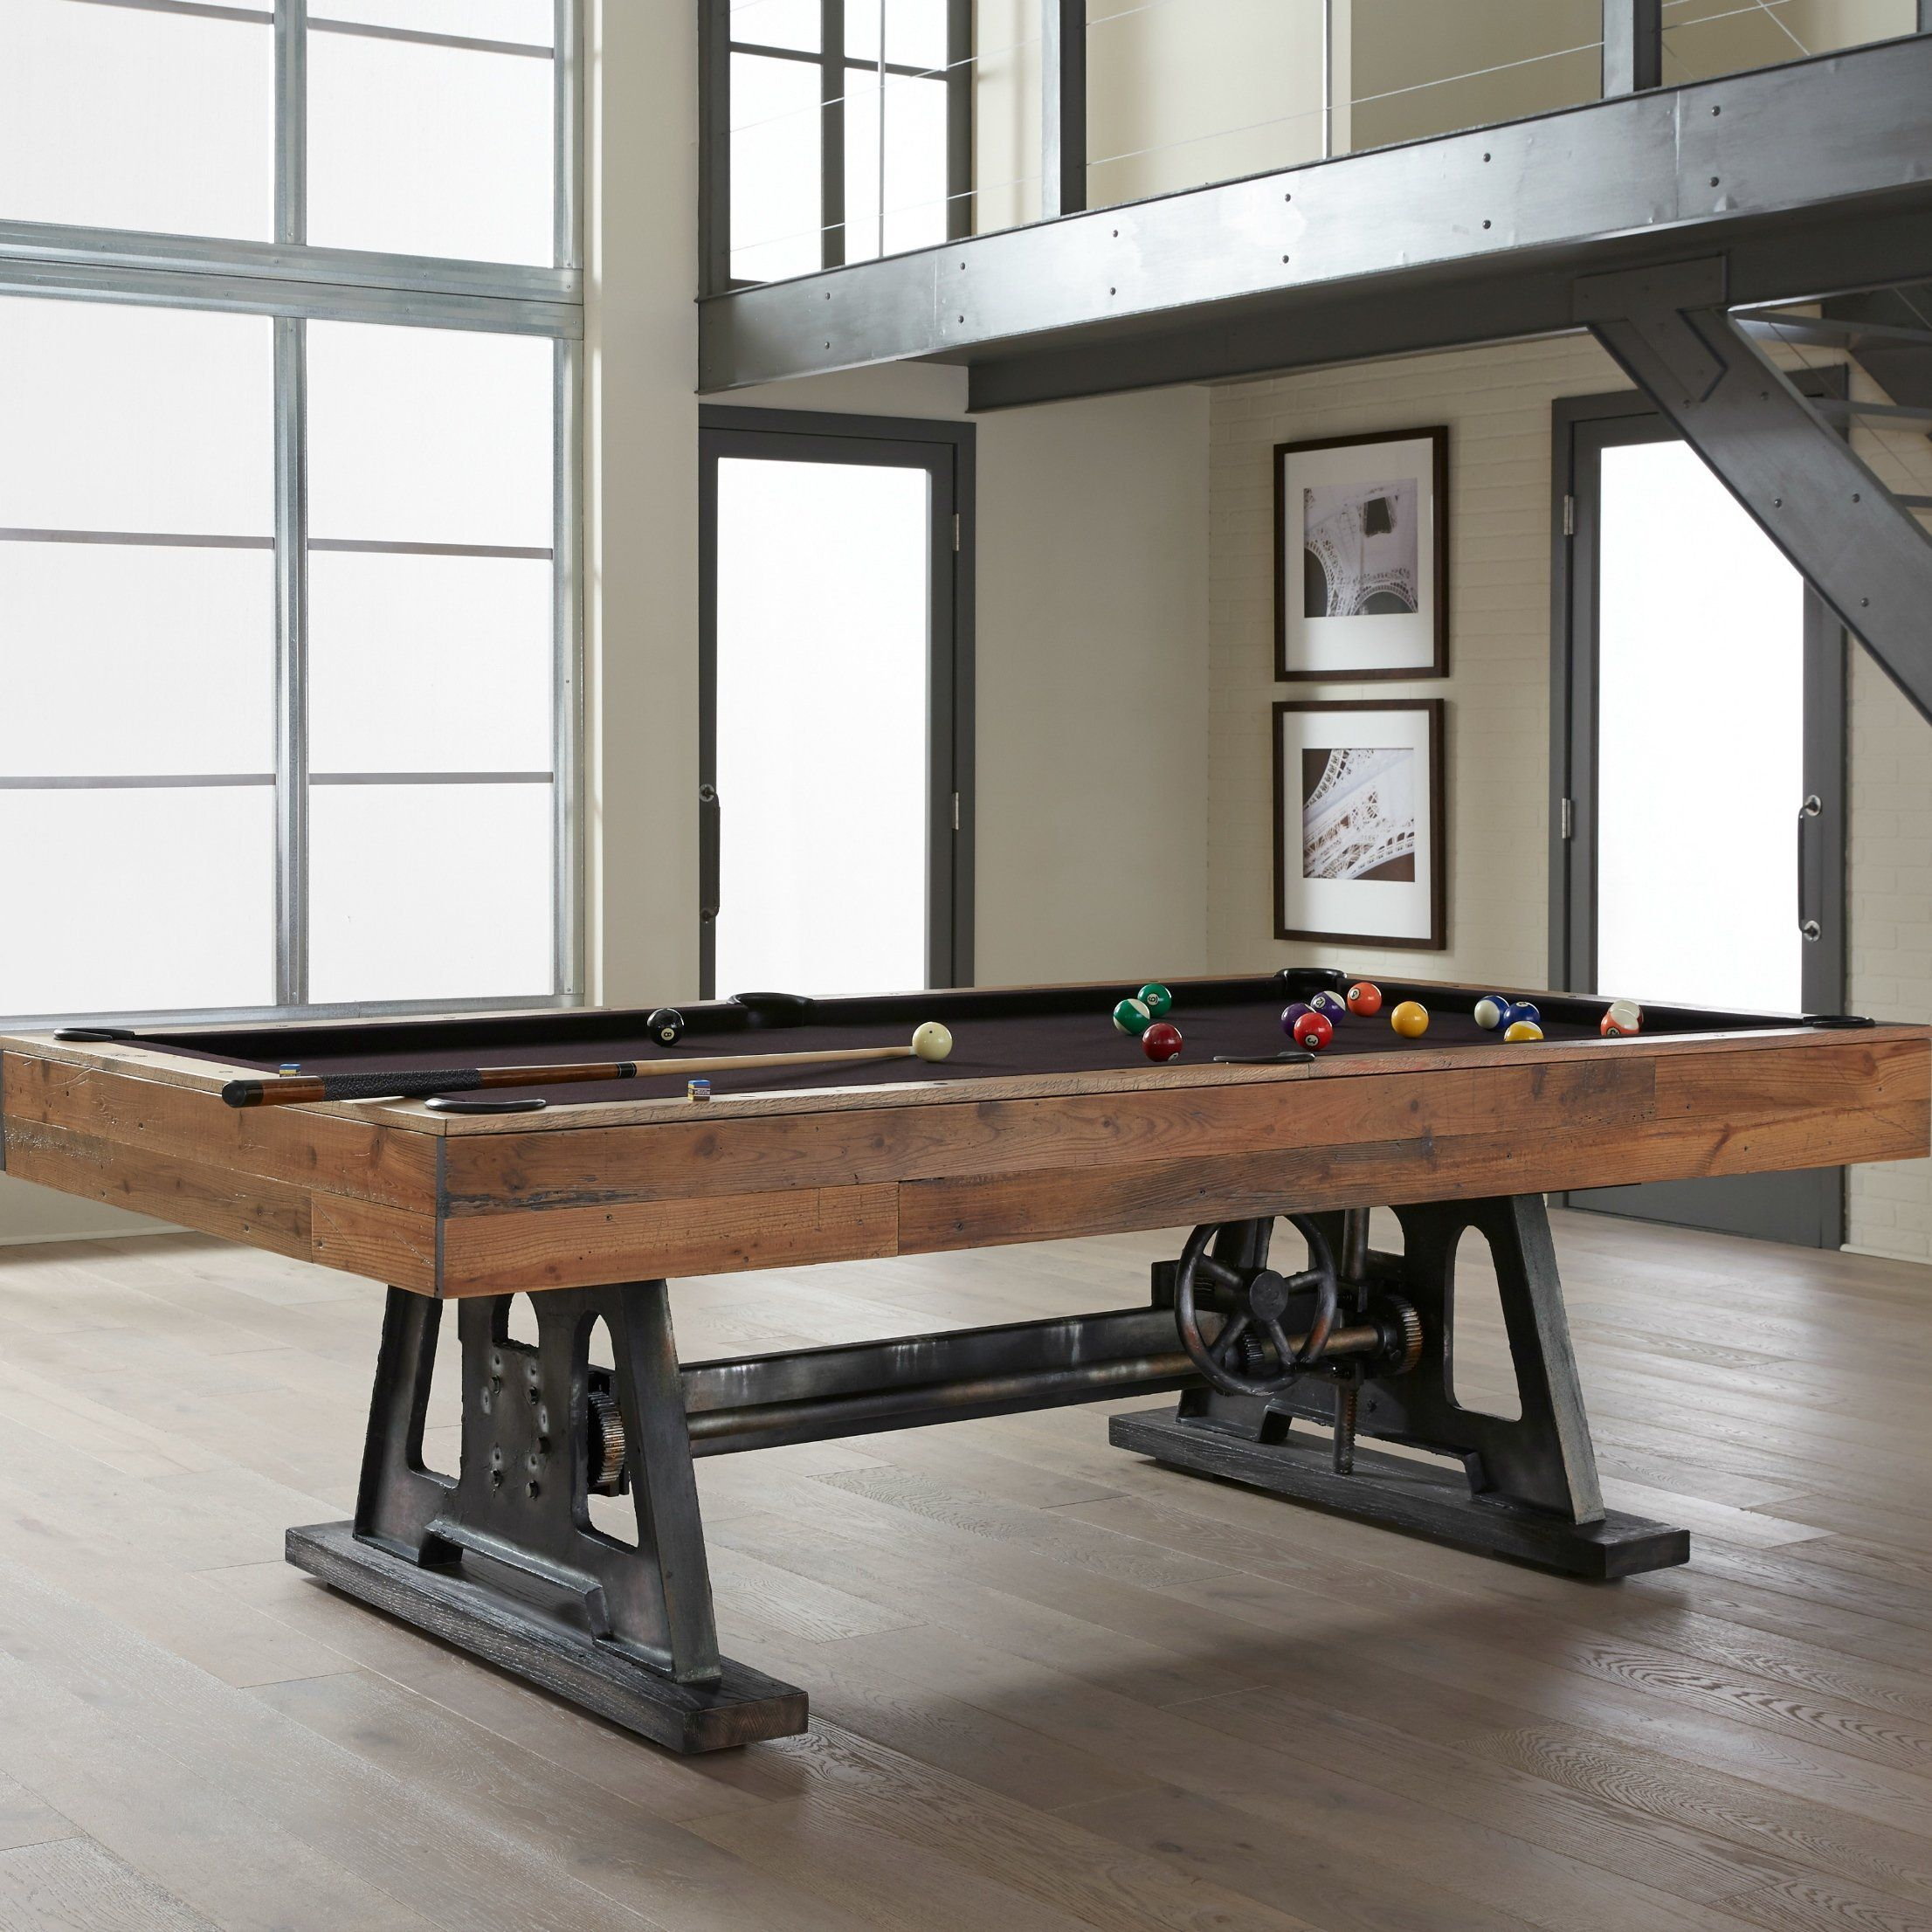 American Heritage Billiards U2013 The Worldu0027s Leading Pool Table, Game Table,  Bar And Bar Stool Manufacturer U2013 Presents The Da Vinci Pool Table.